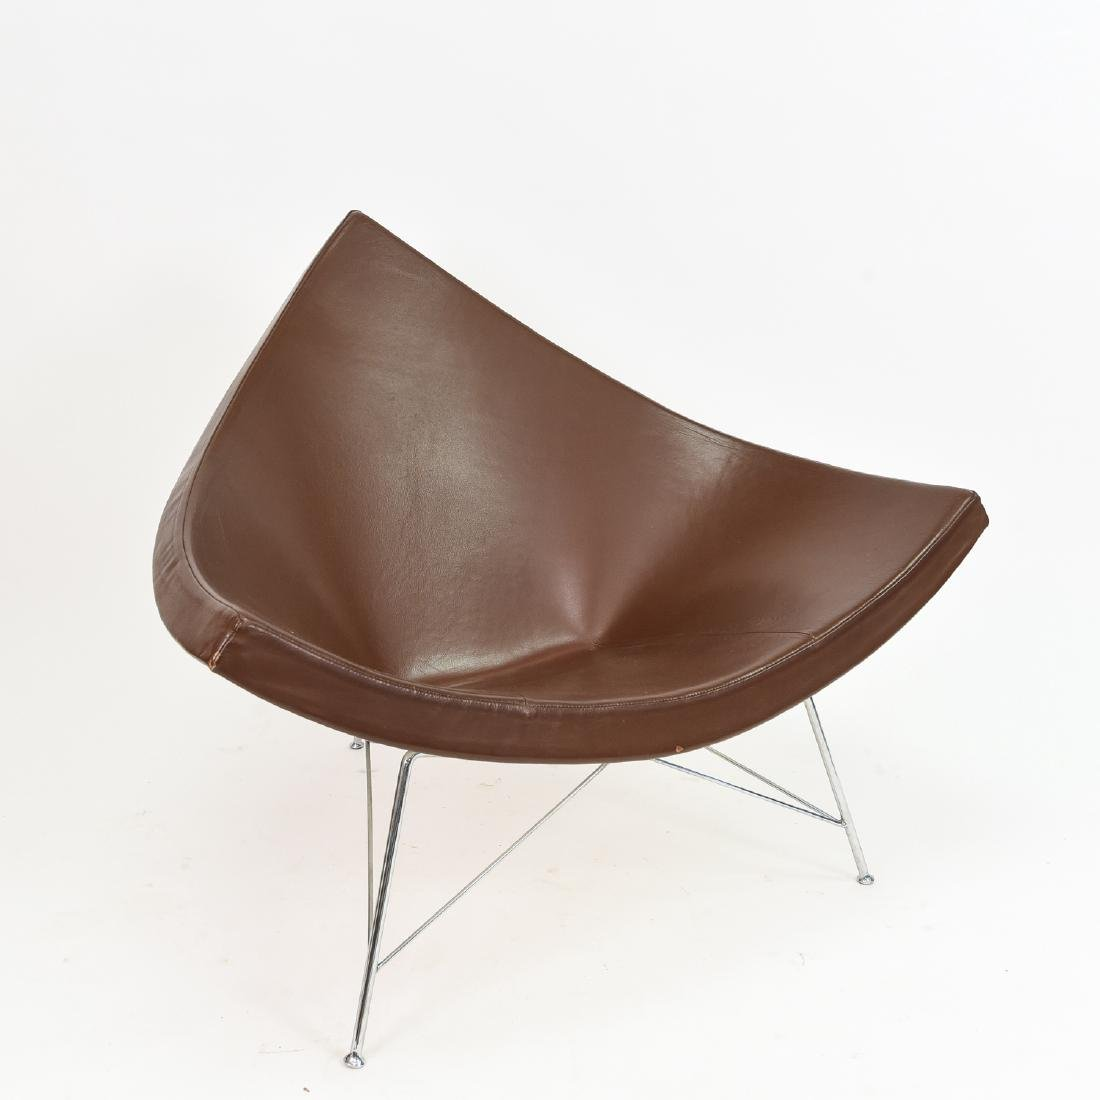 GEORGE NELSON COCONUT CHAIR